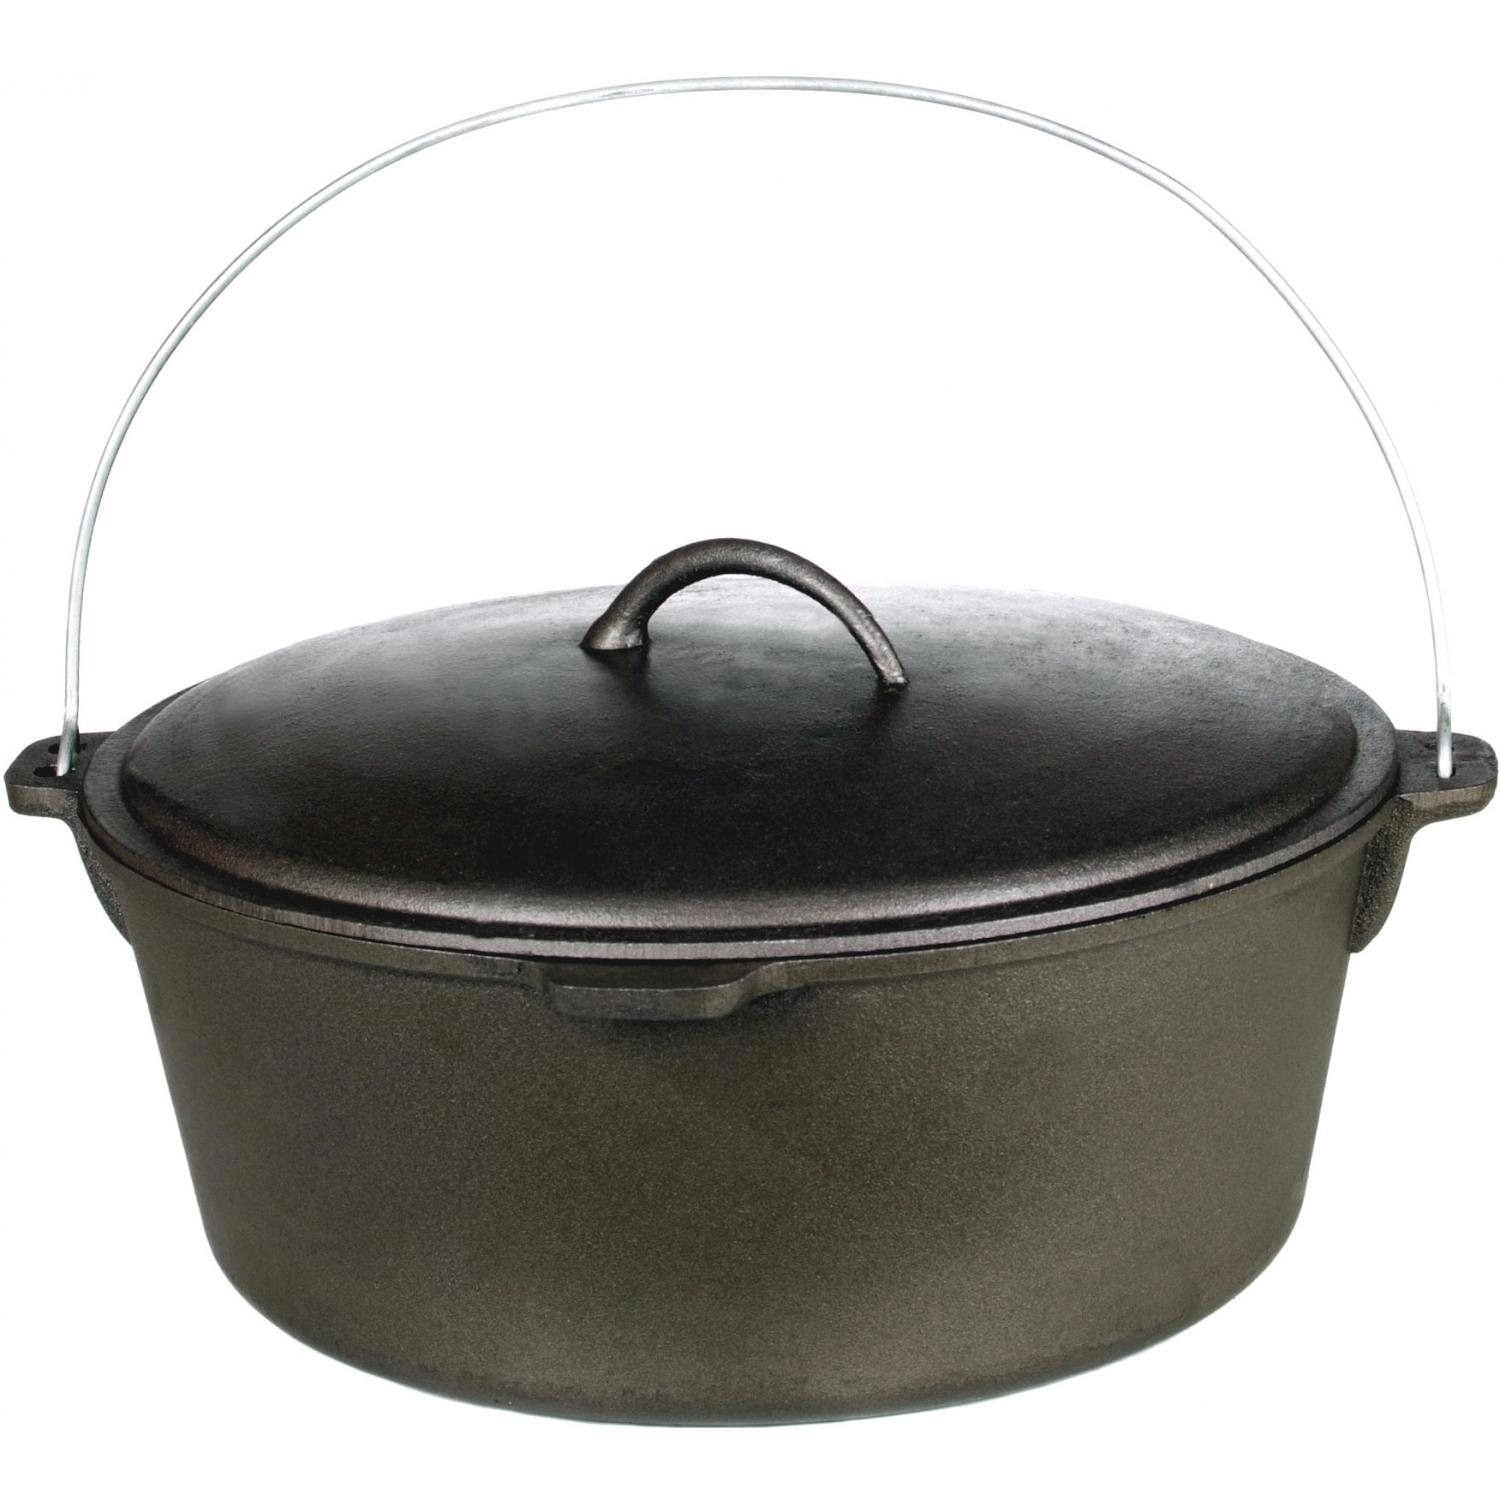 Cajun Cookware Dutch Ovens With Basket 21 Quart Seasoned Cast Iron Dutch Oven